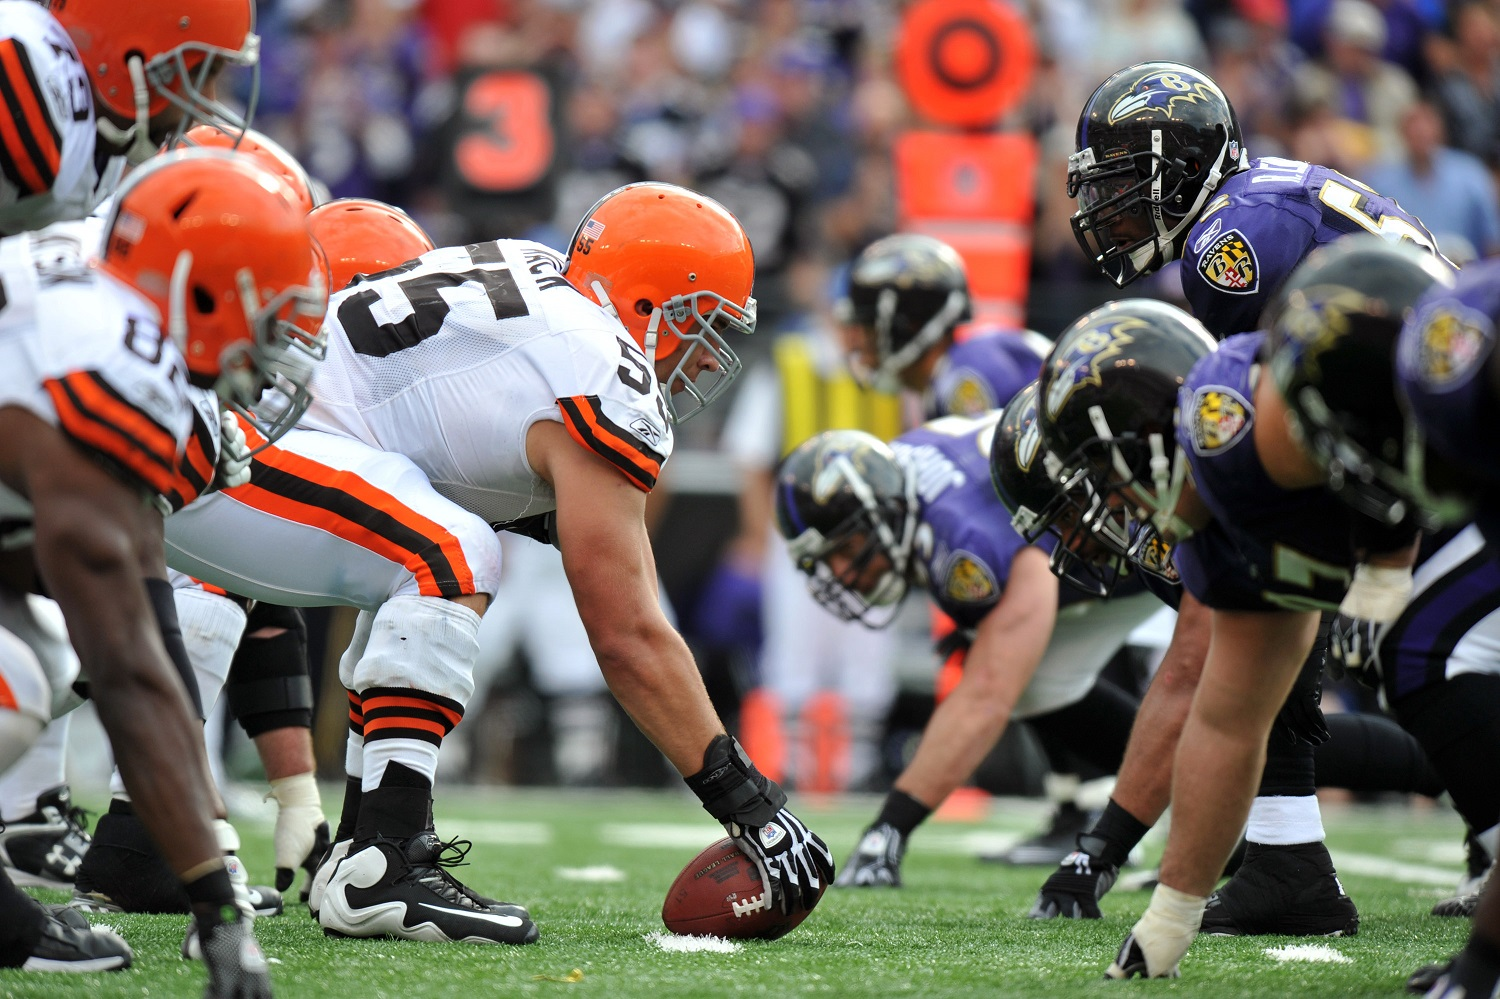 afc north division preview 2020